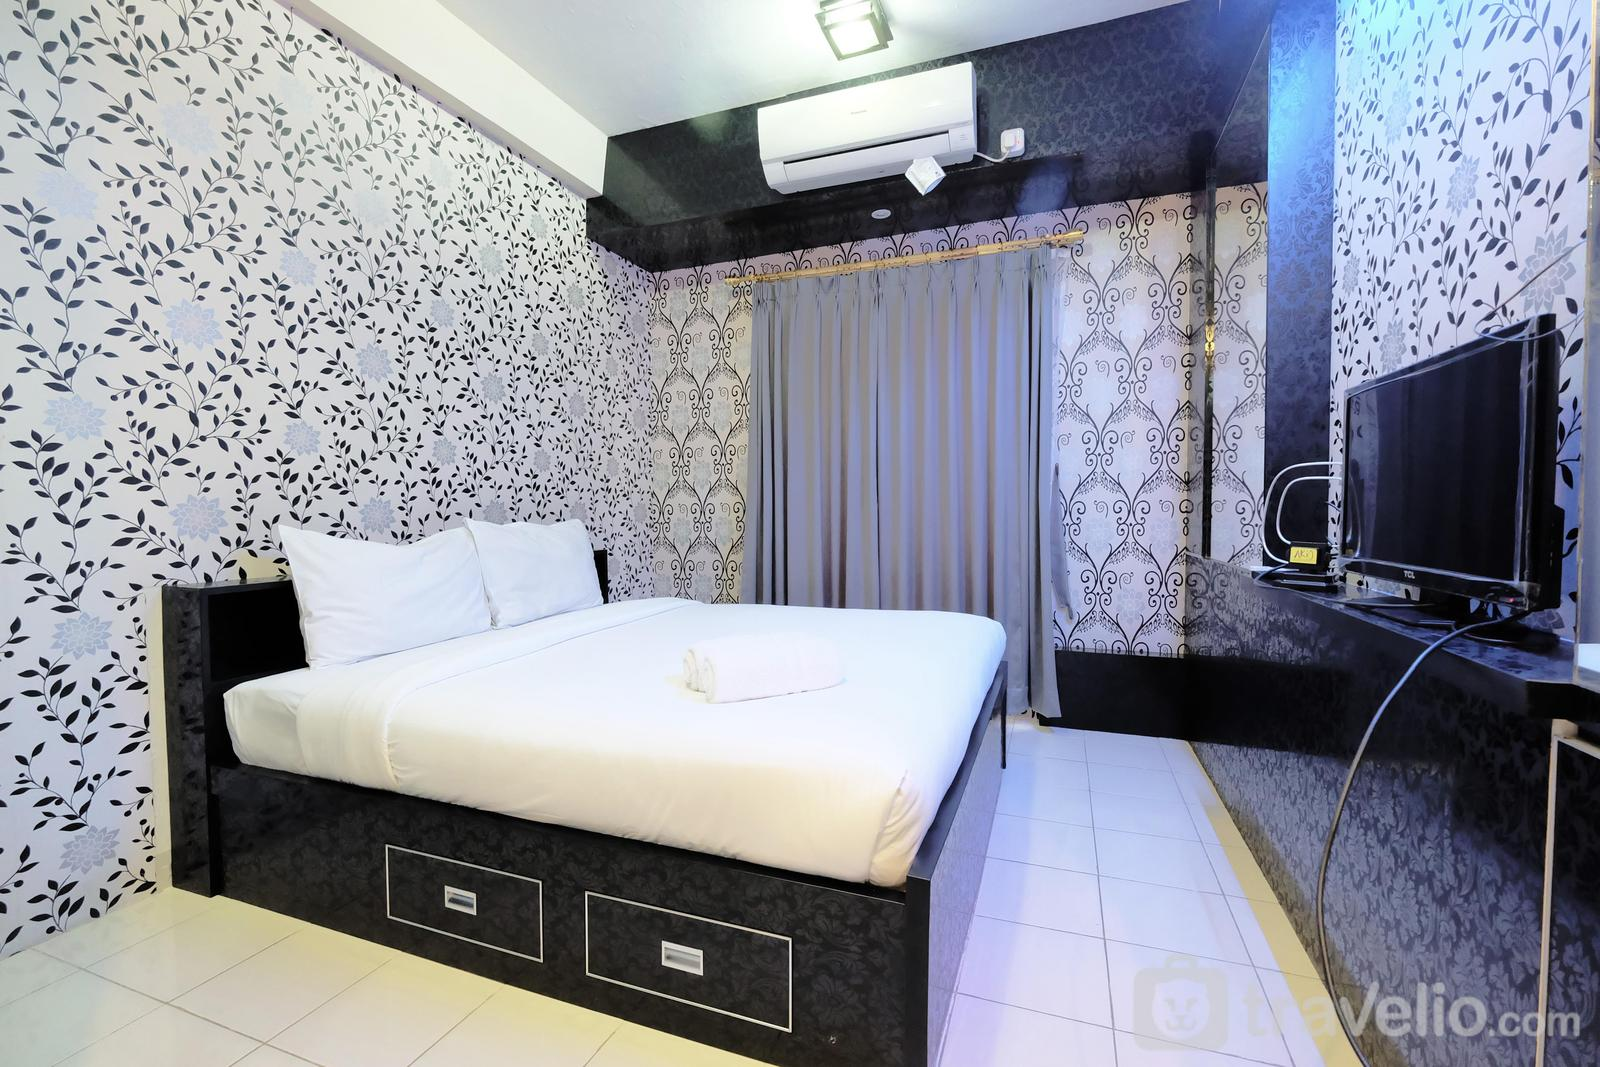 Apartemen Sunter Park View - Artistic Studio Sunter Park View Apartment By Travelio